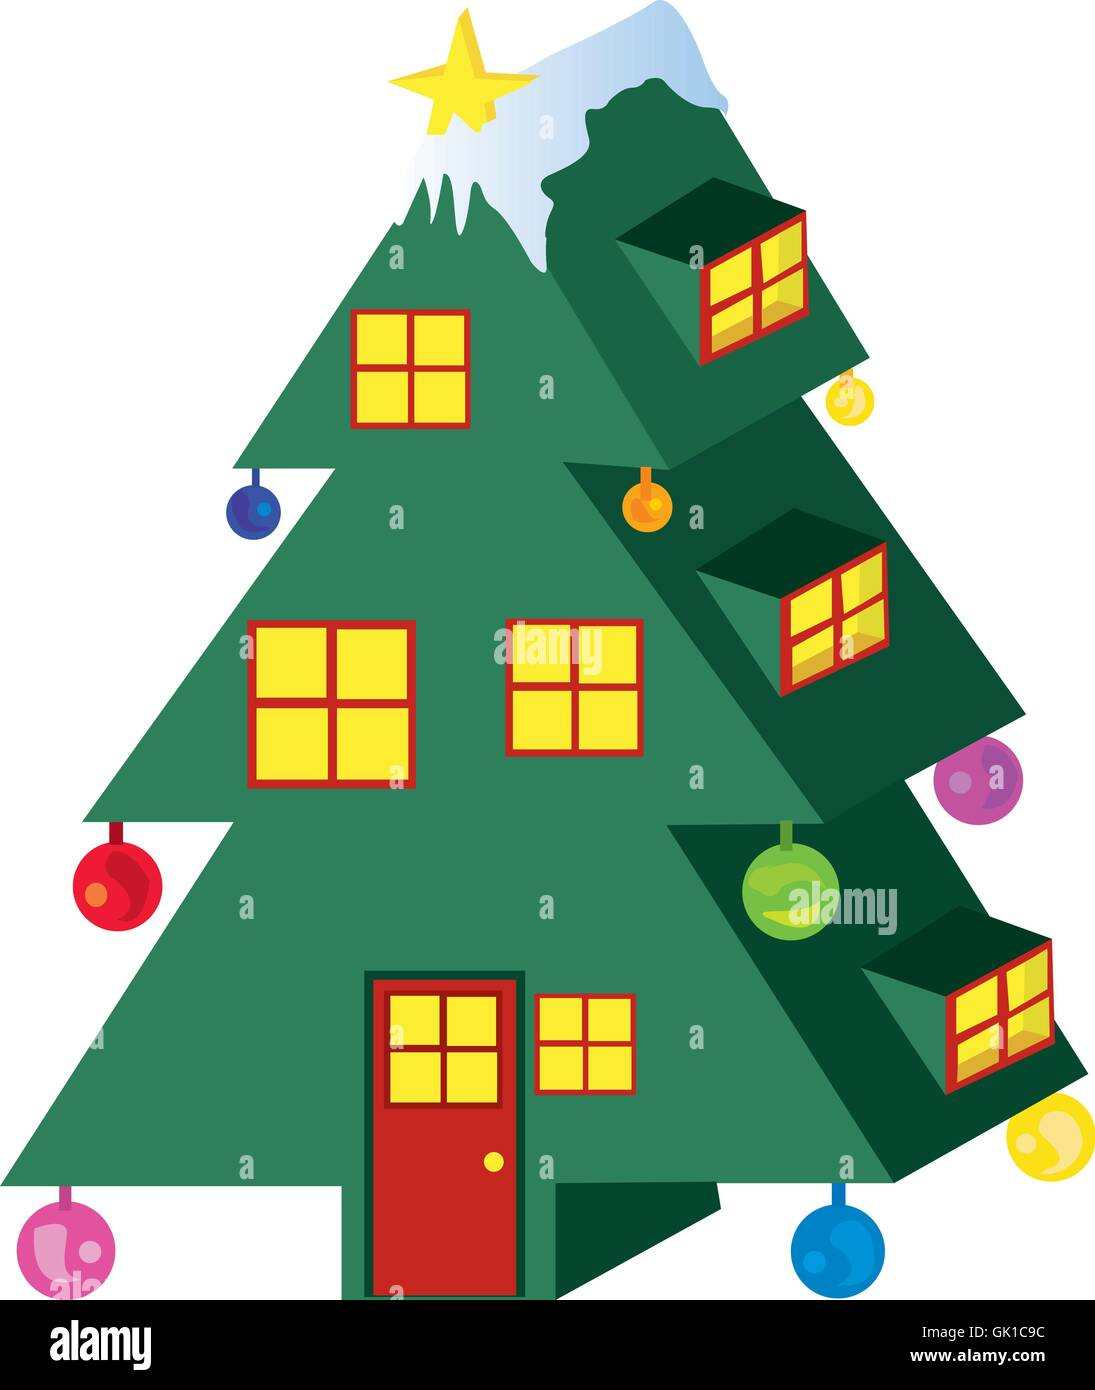 Christmas Tree House - Stock Vector